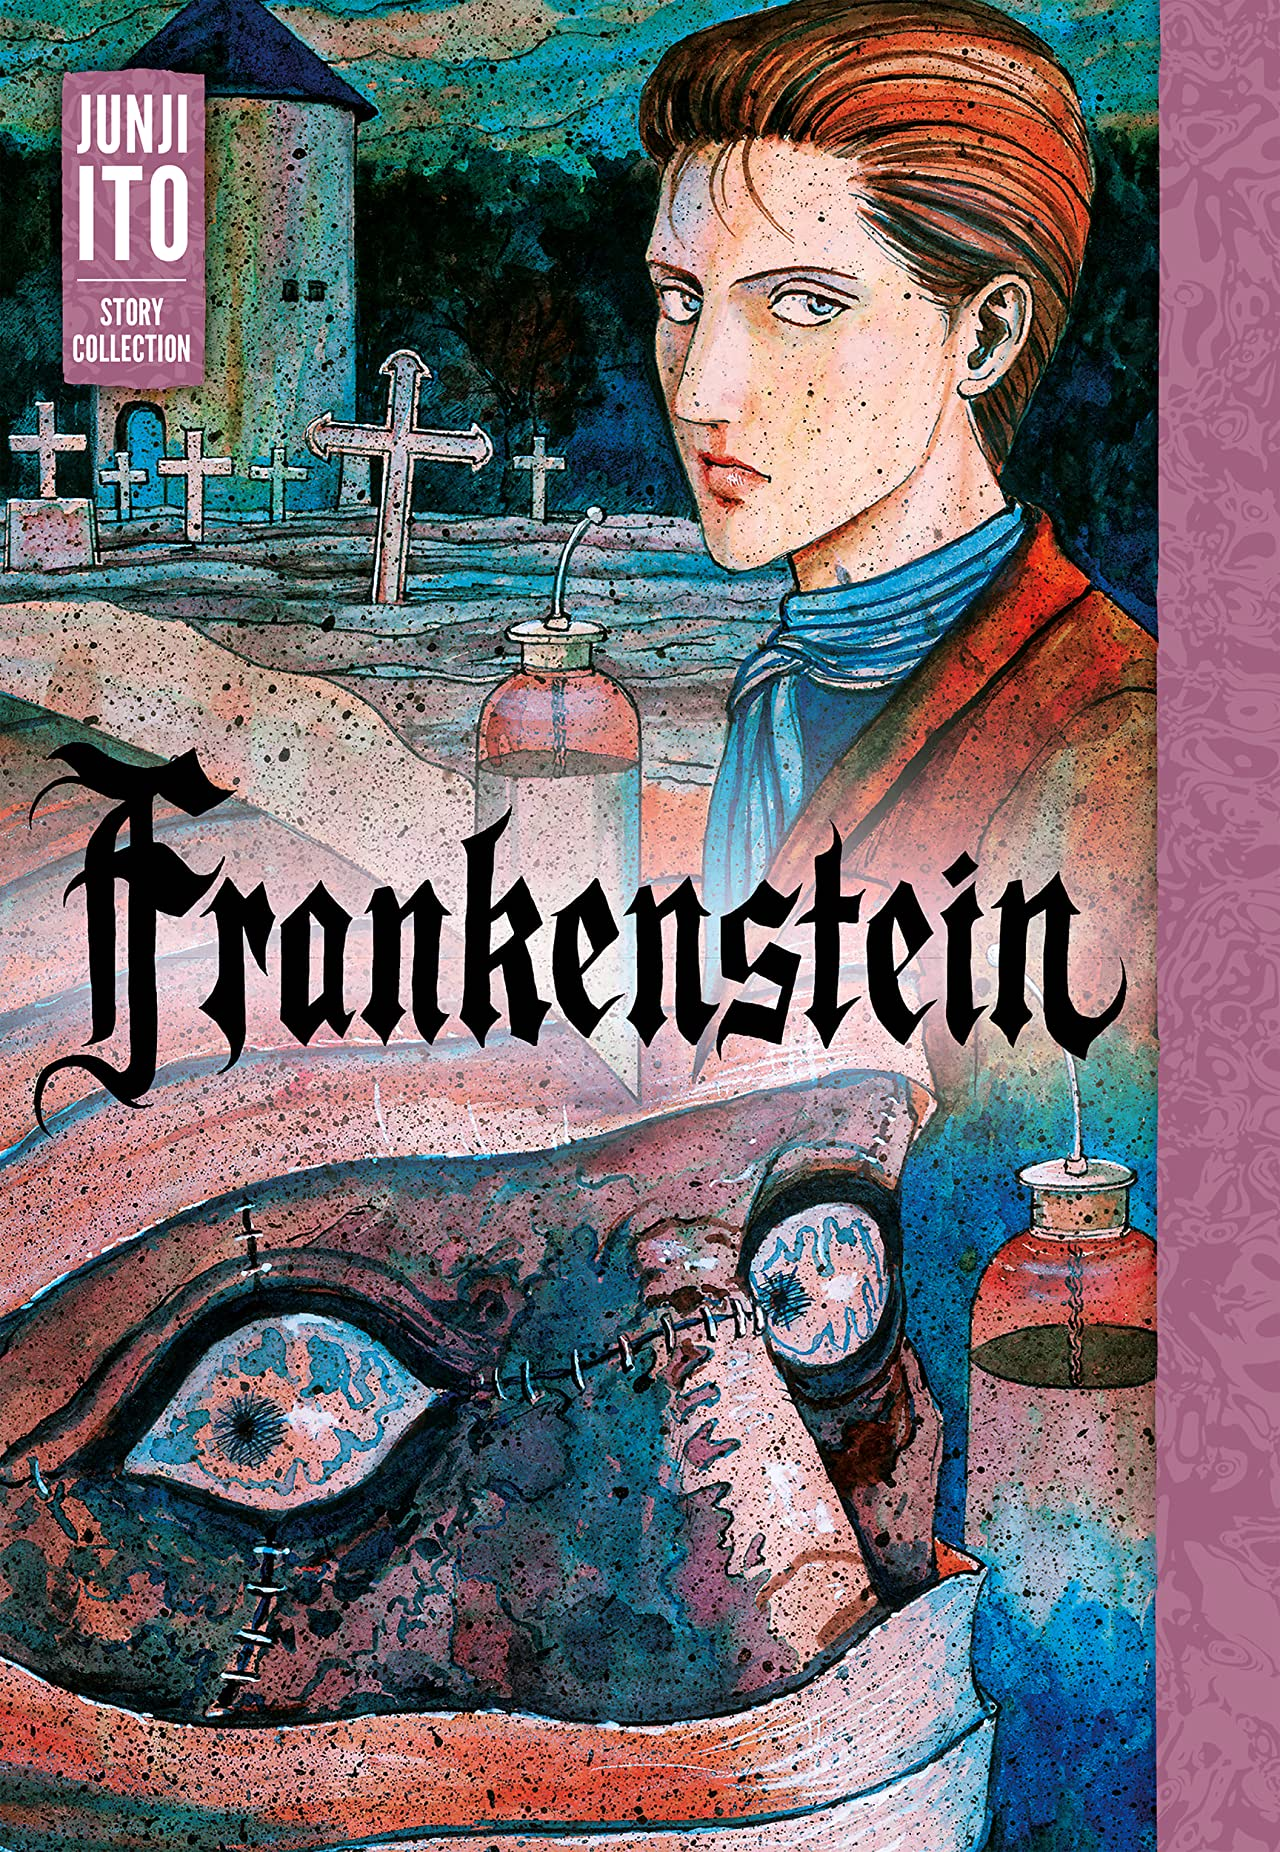 Frankenstein: Junji Ito Story Collection Tome 1